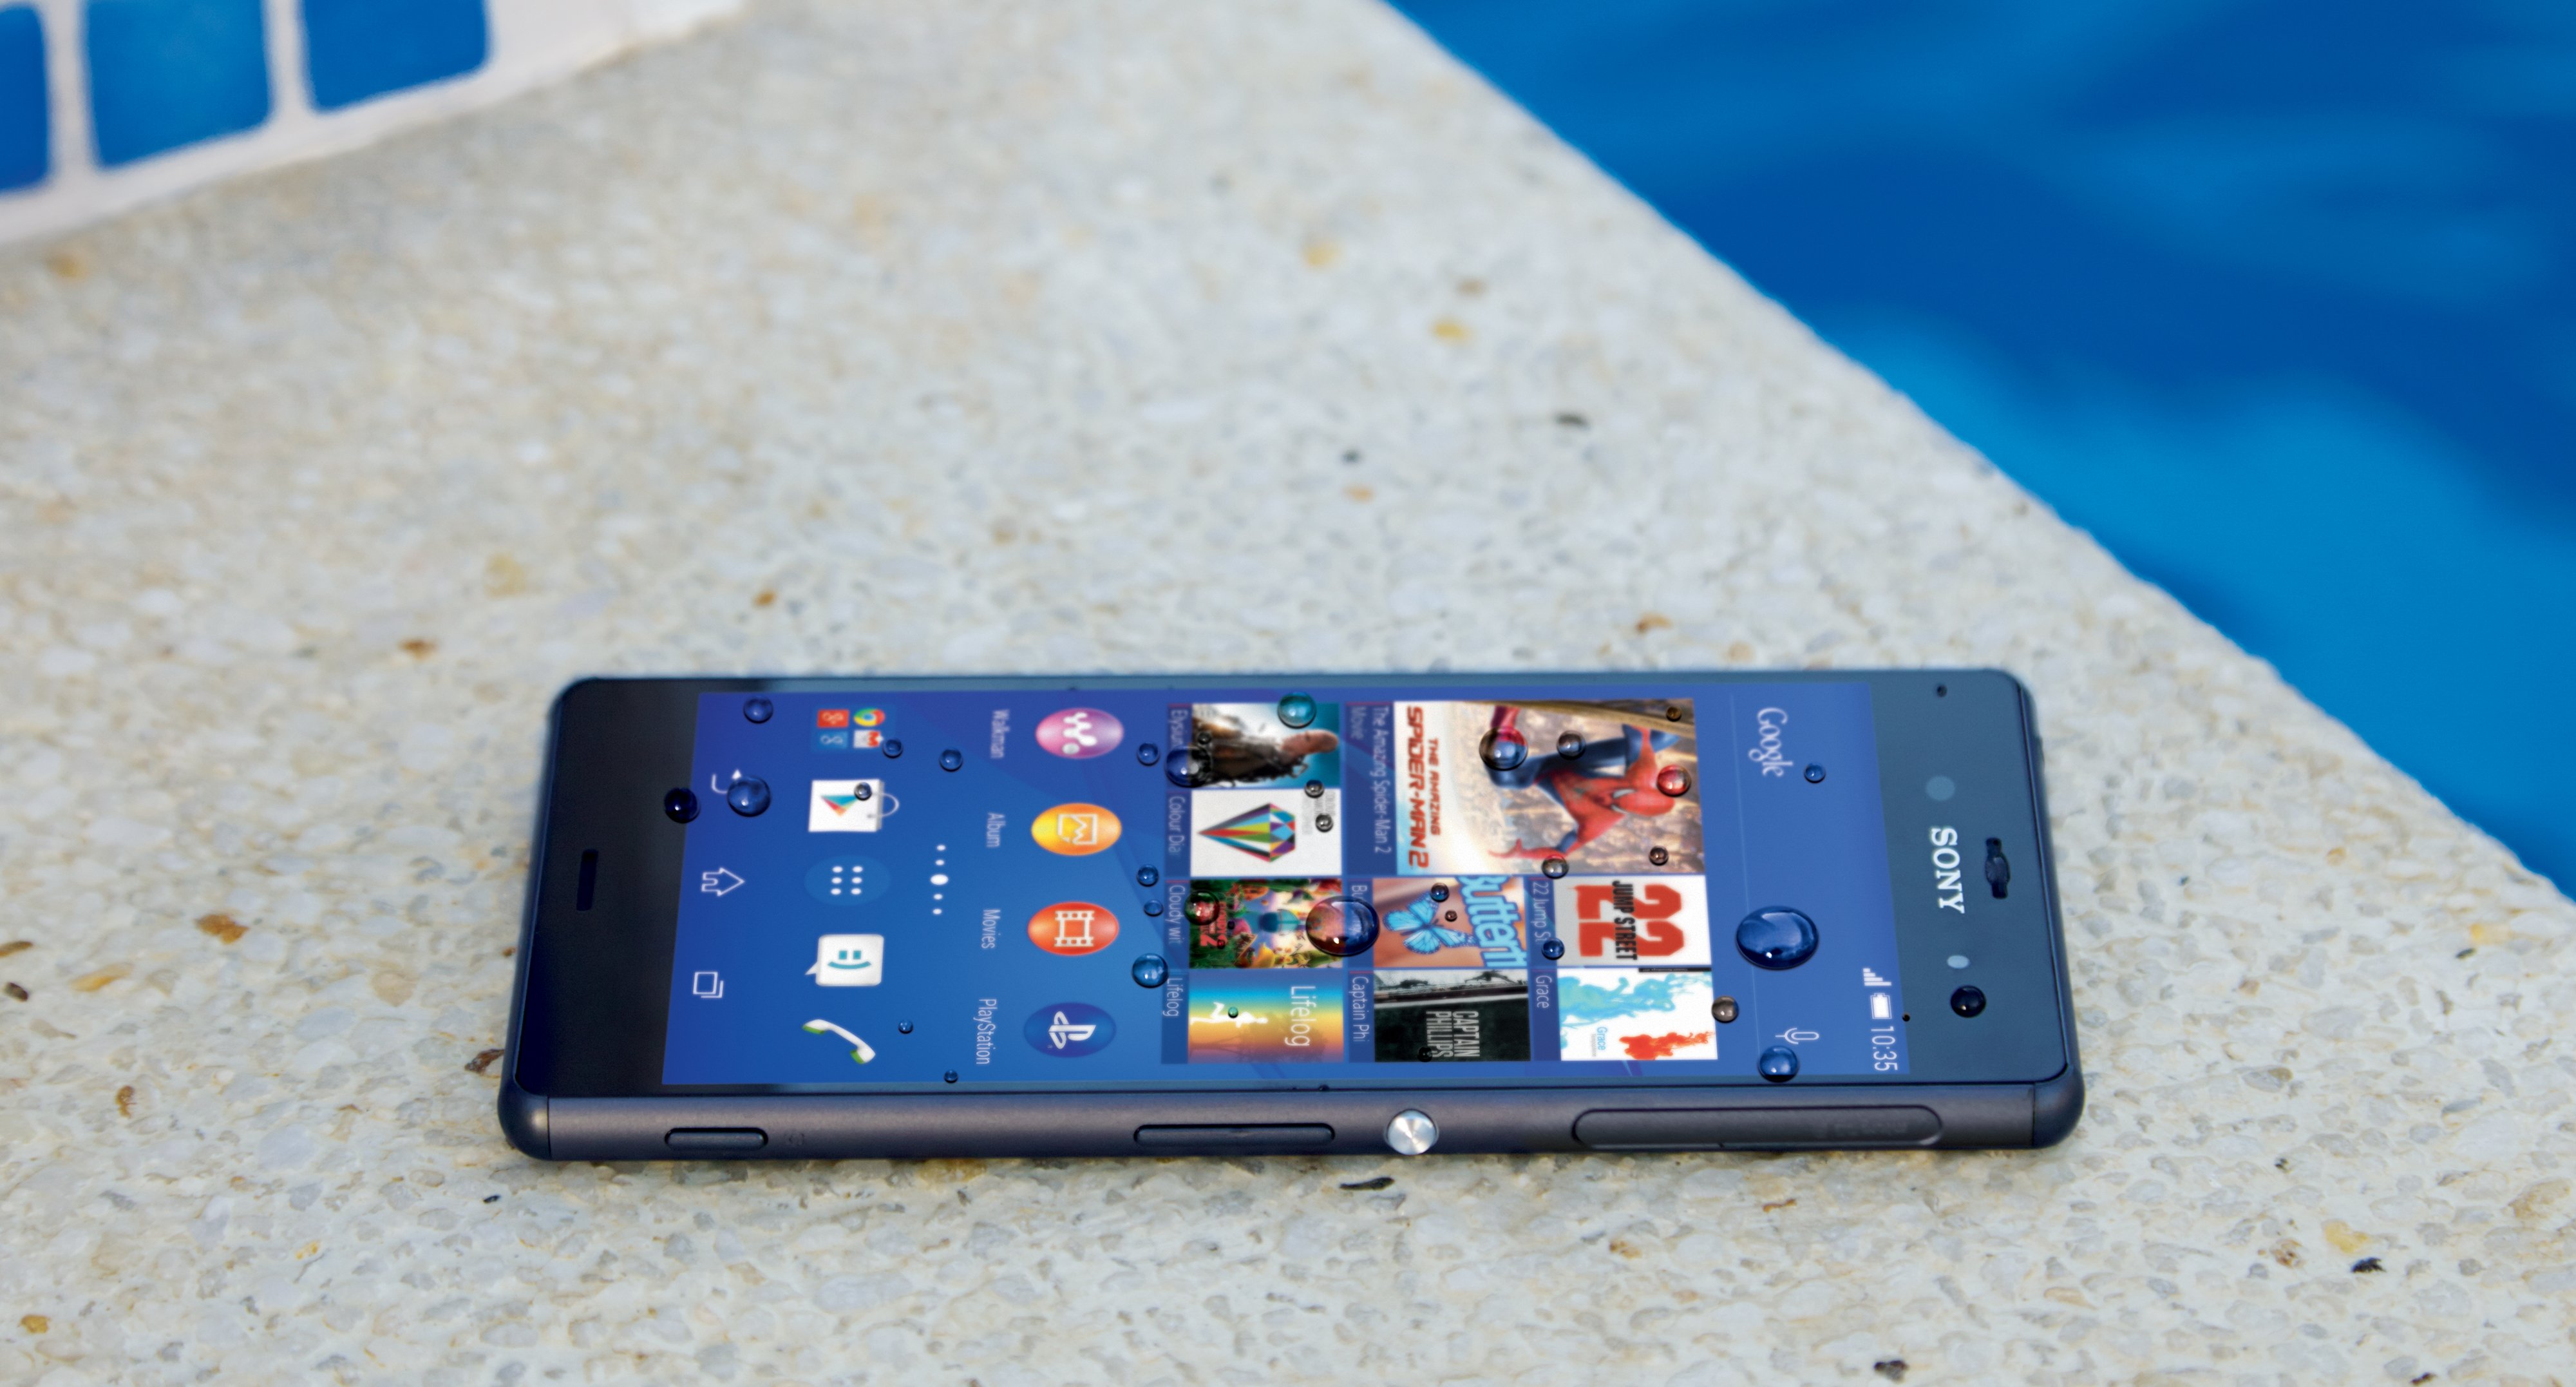 Hd wallpaper xperia z3 - Download The Sony Xperia Z3 Wallpapers